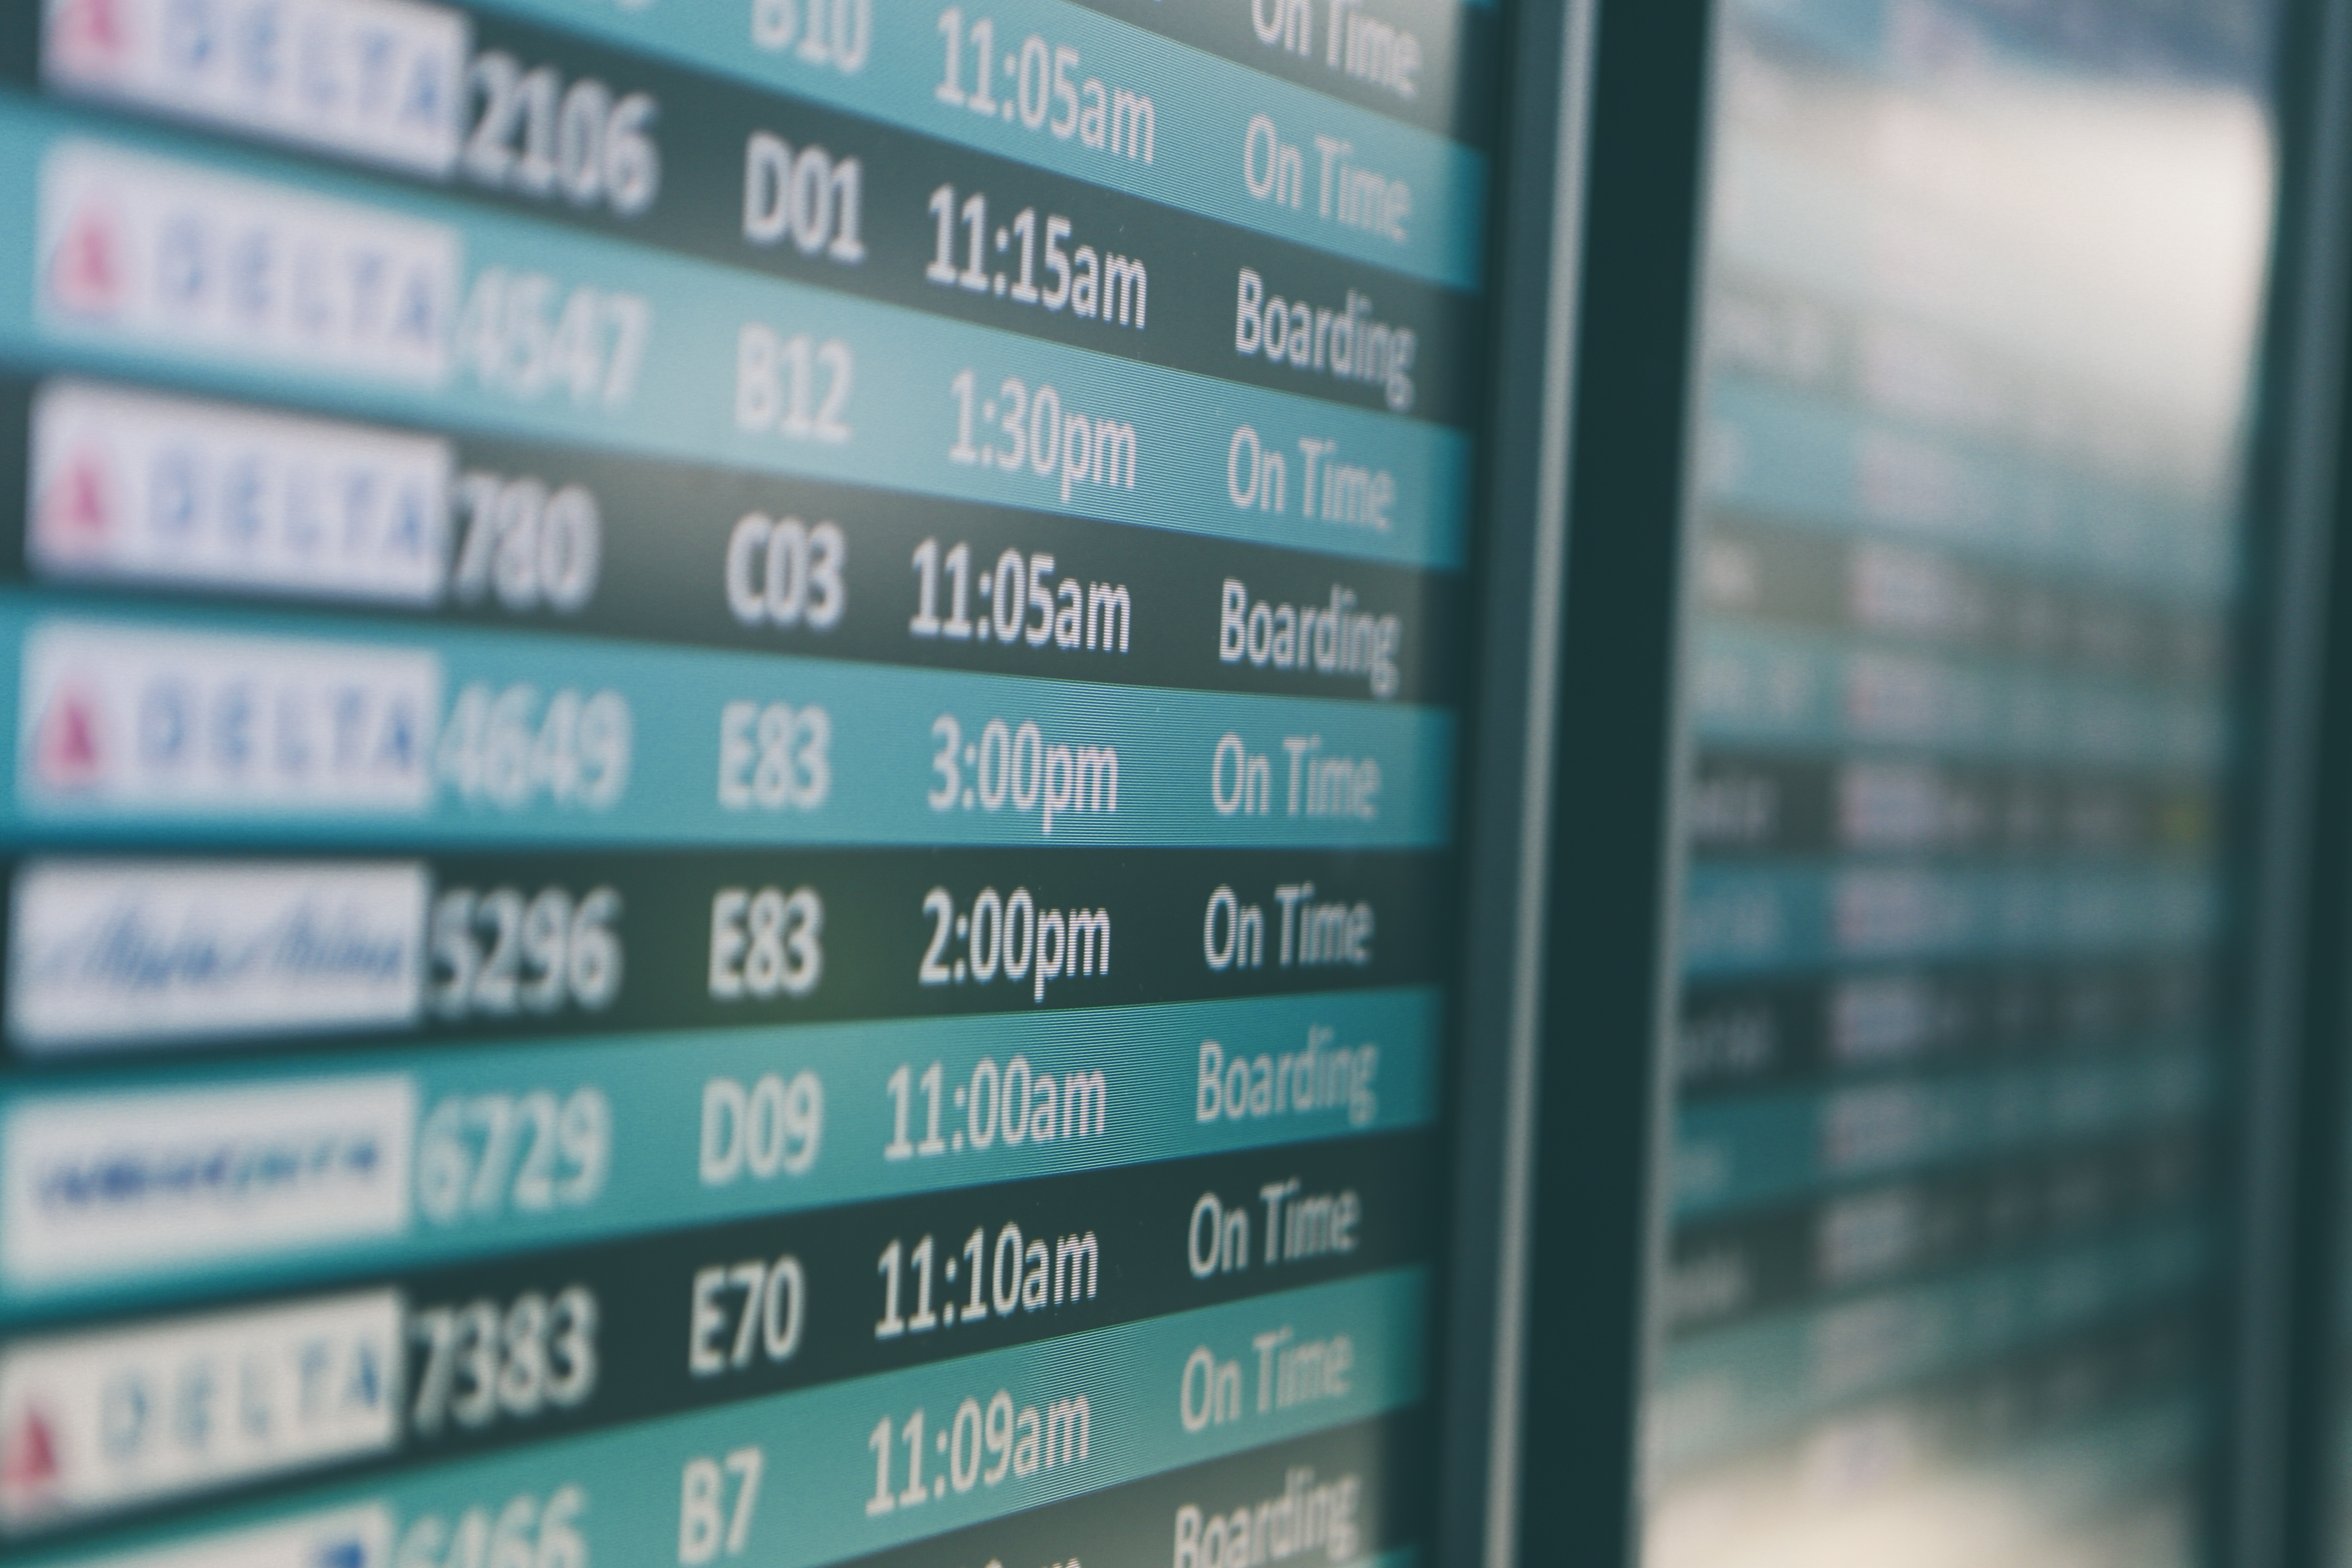 Your Flight Is Cancelled schedule